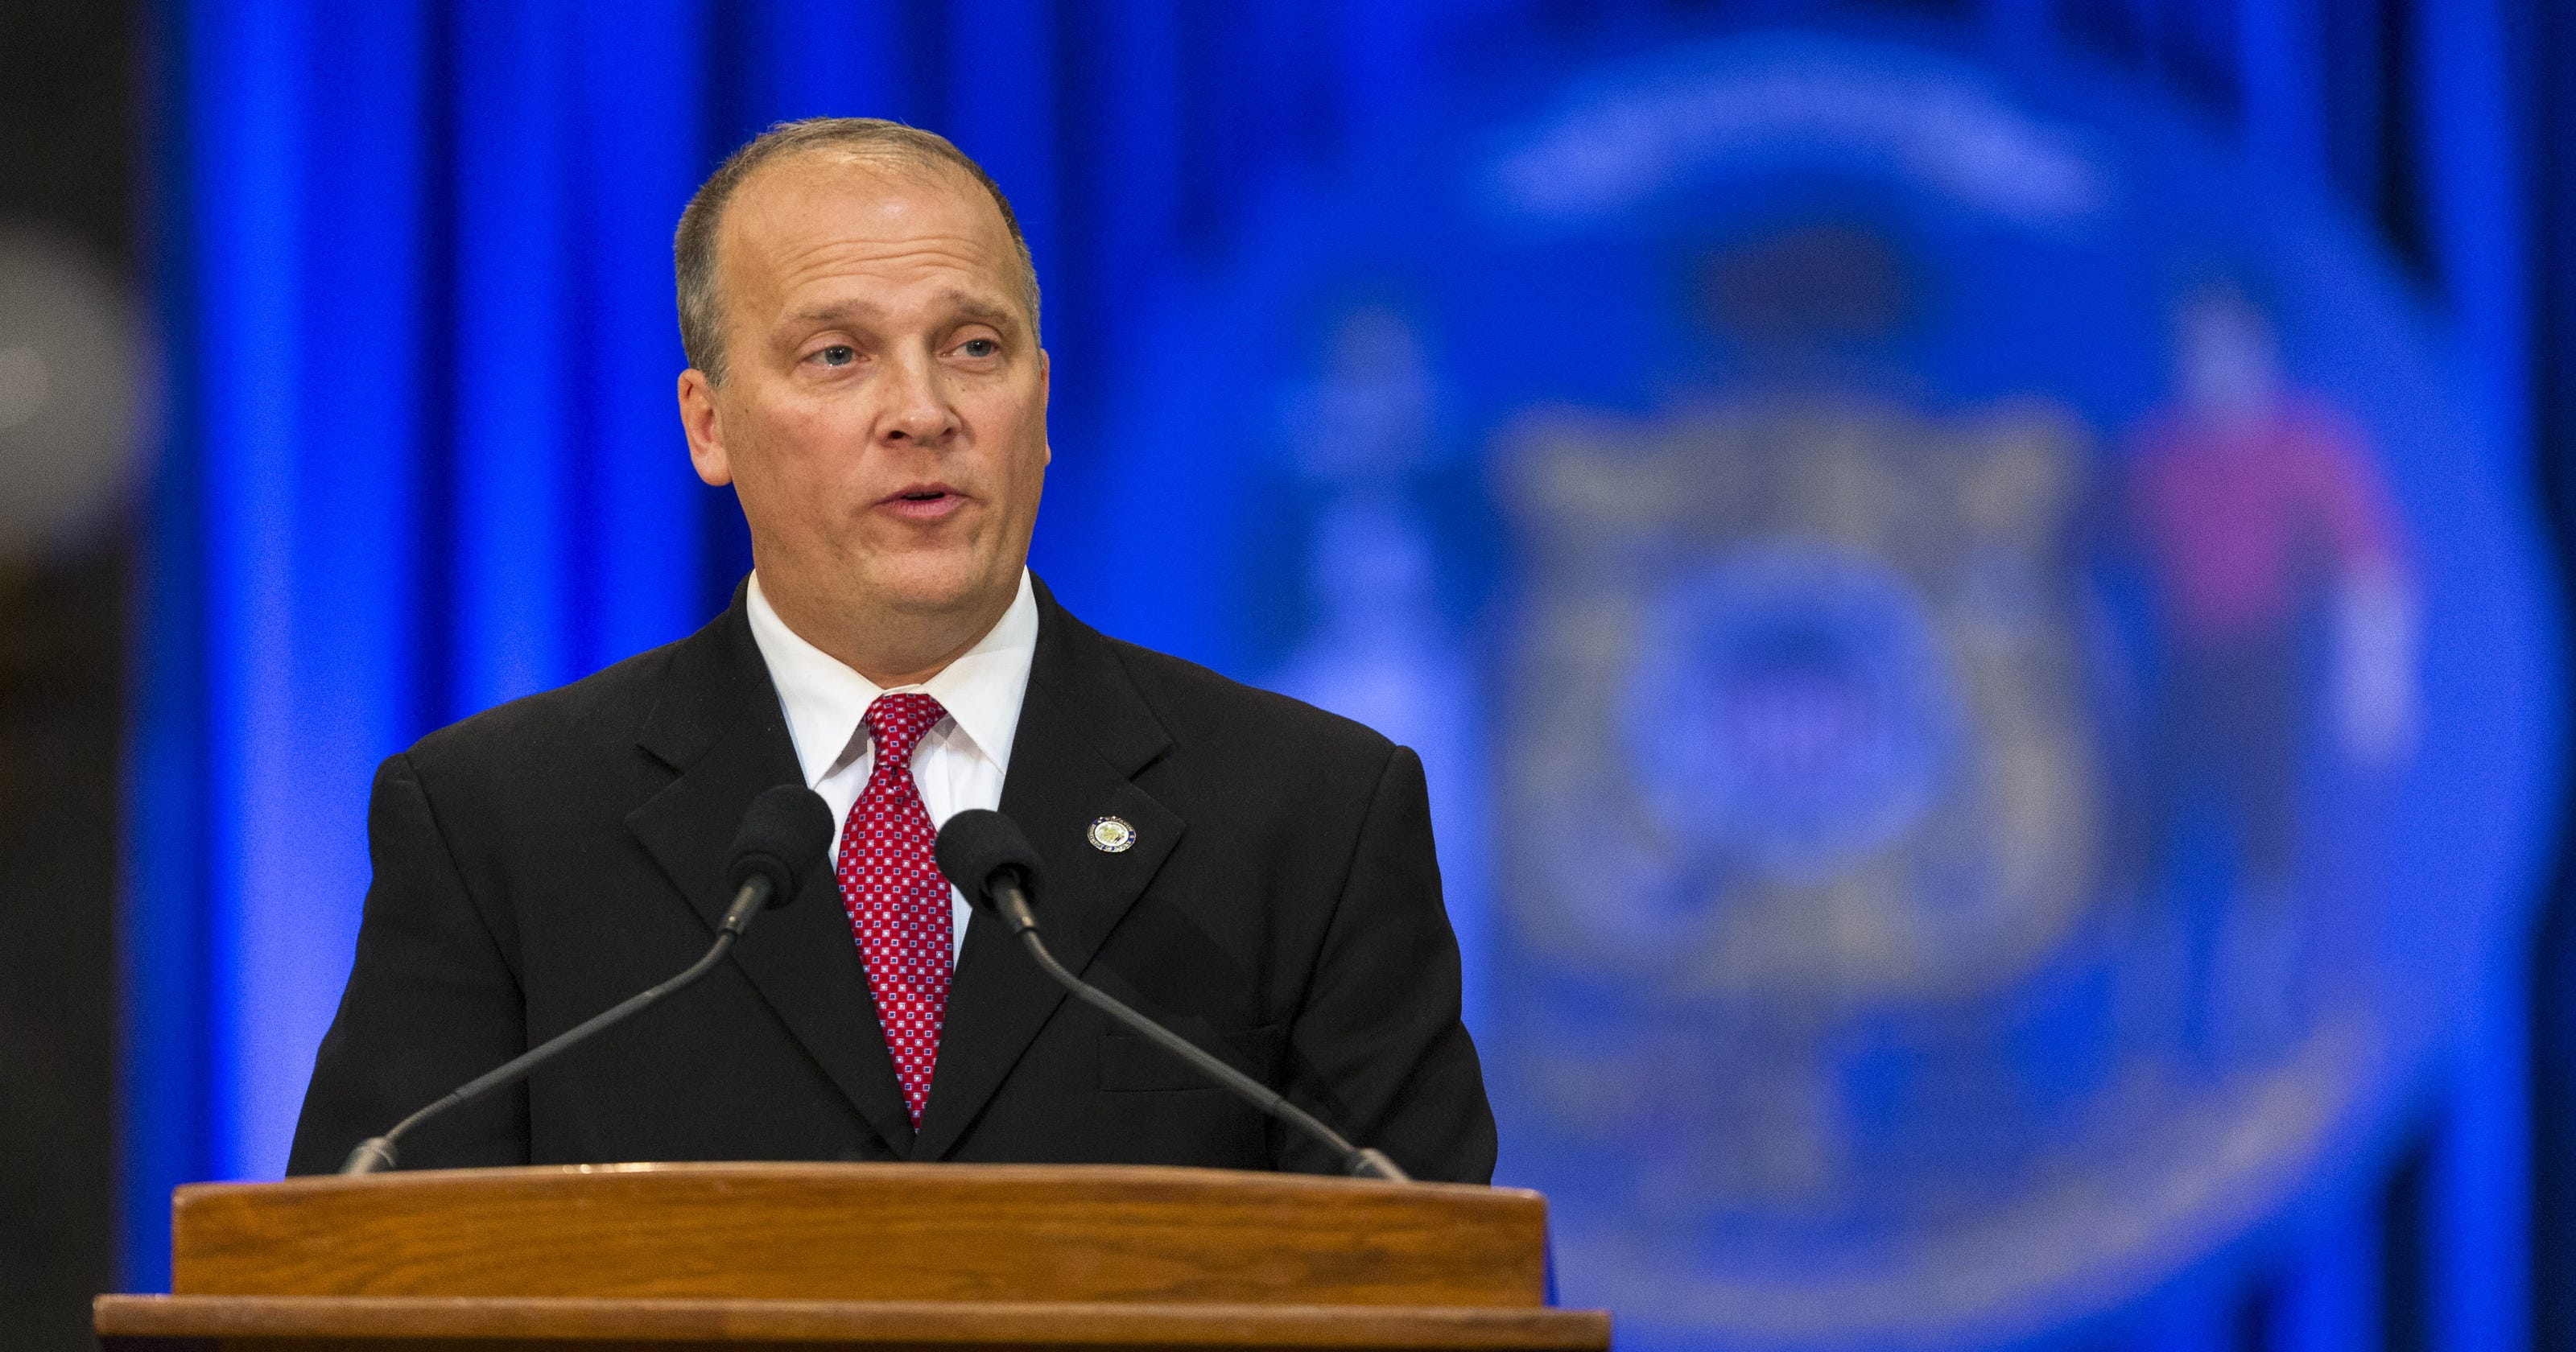 Wisconsin attorney general Schimel wanted ADF trip secret